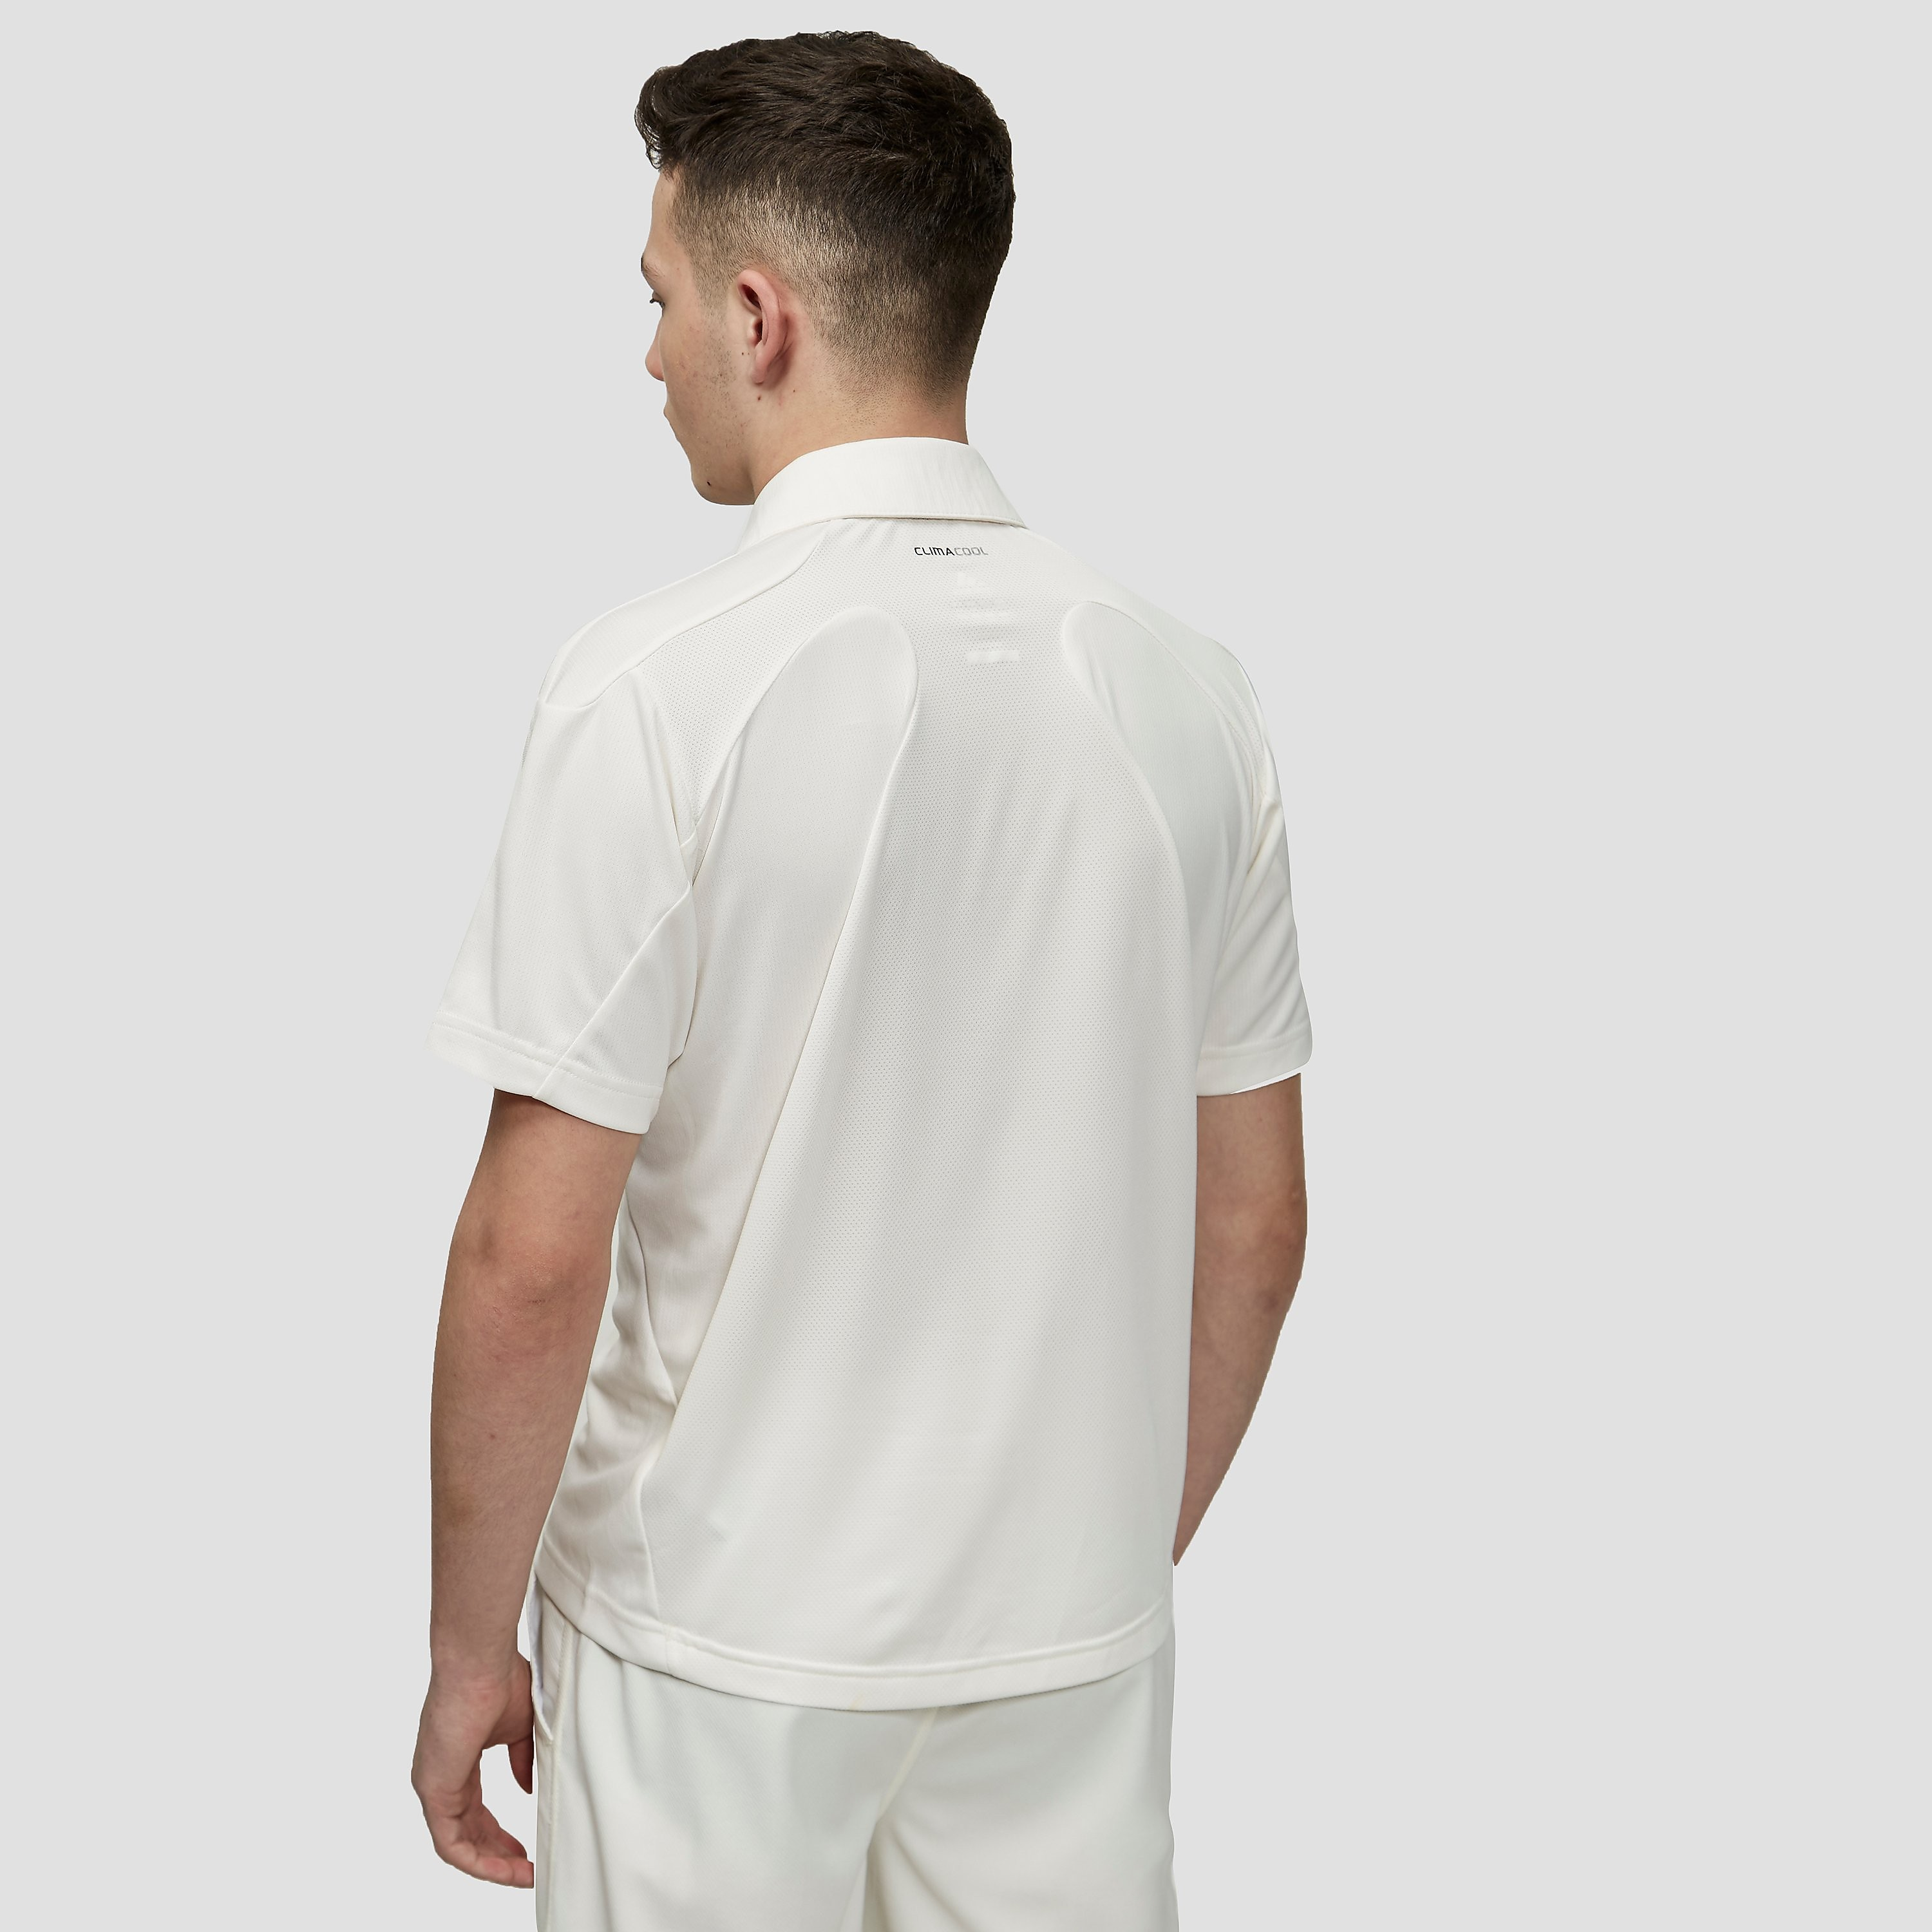 adidas Short Sleeve Junior Cricket Shirt